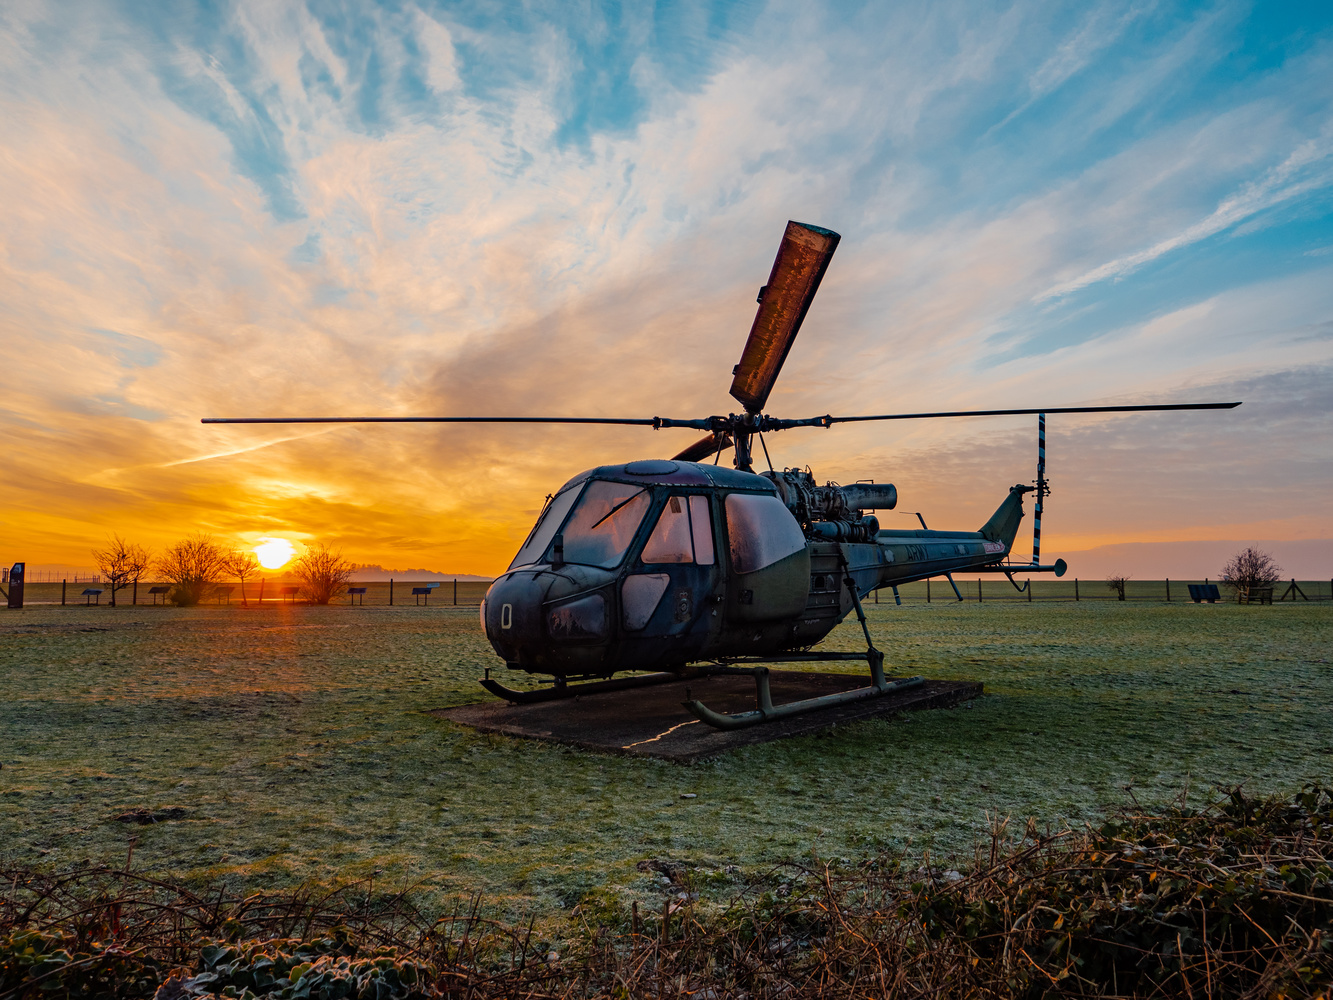 Frosty Helicopter by Richard Gale